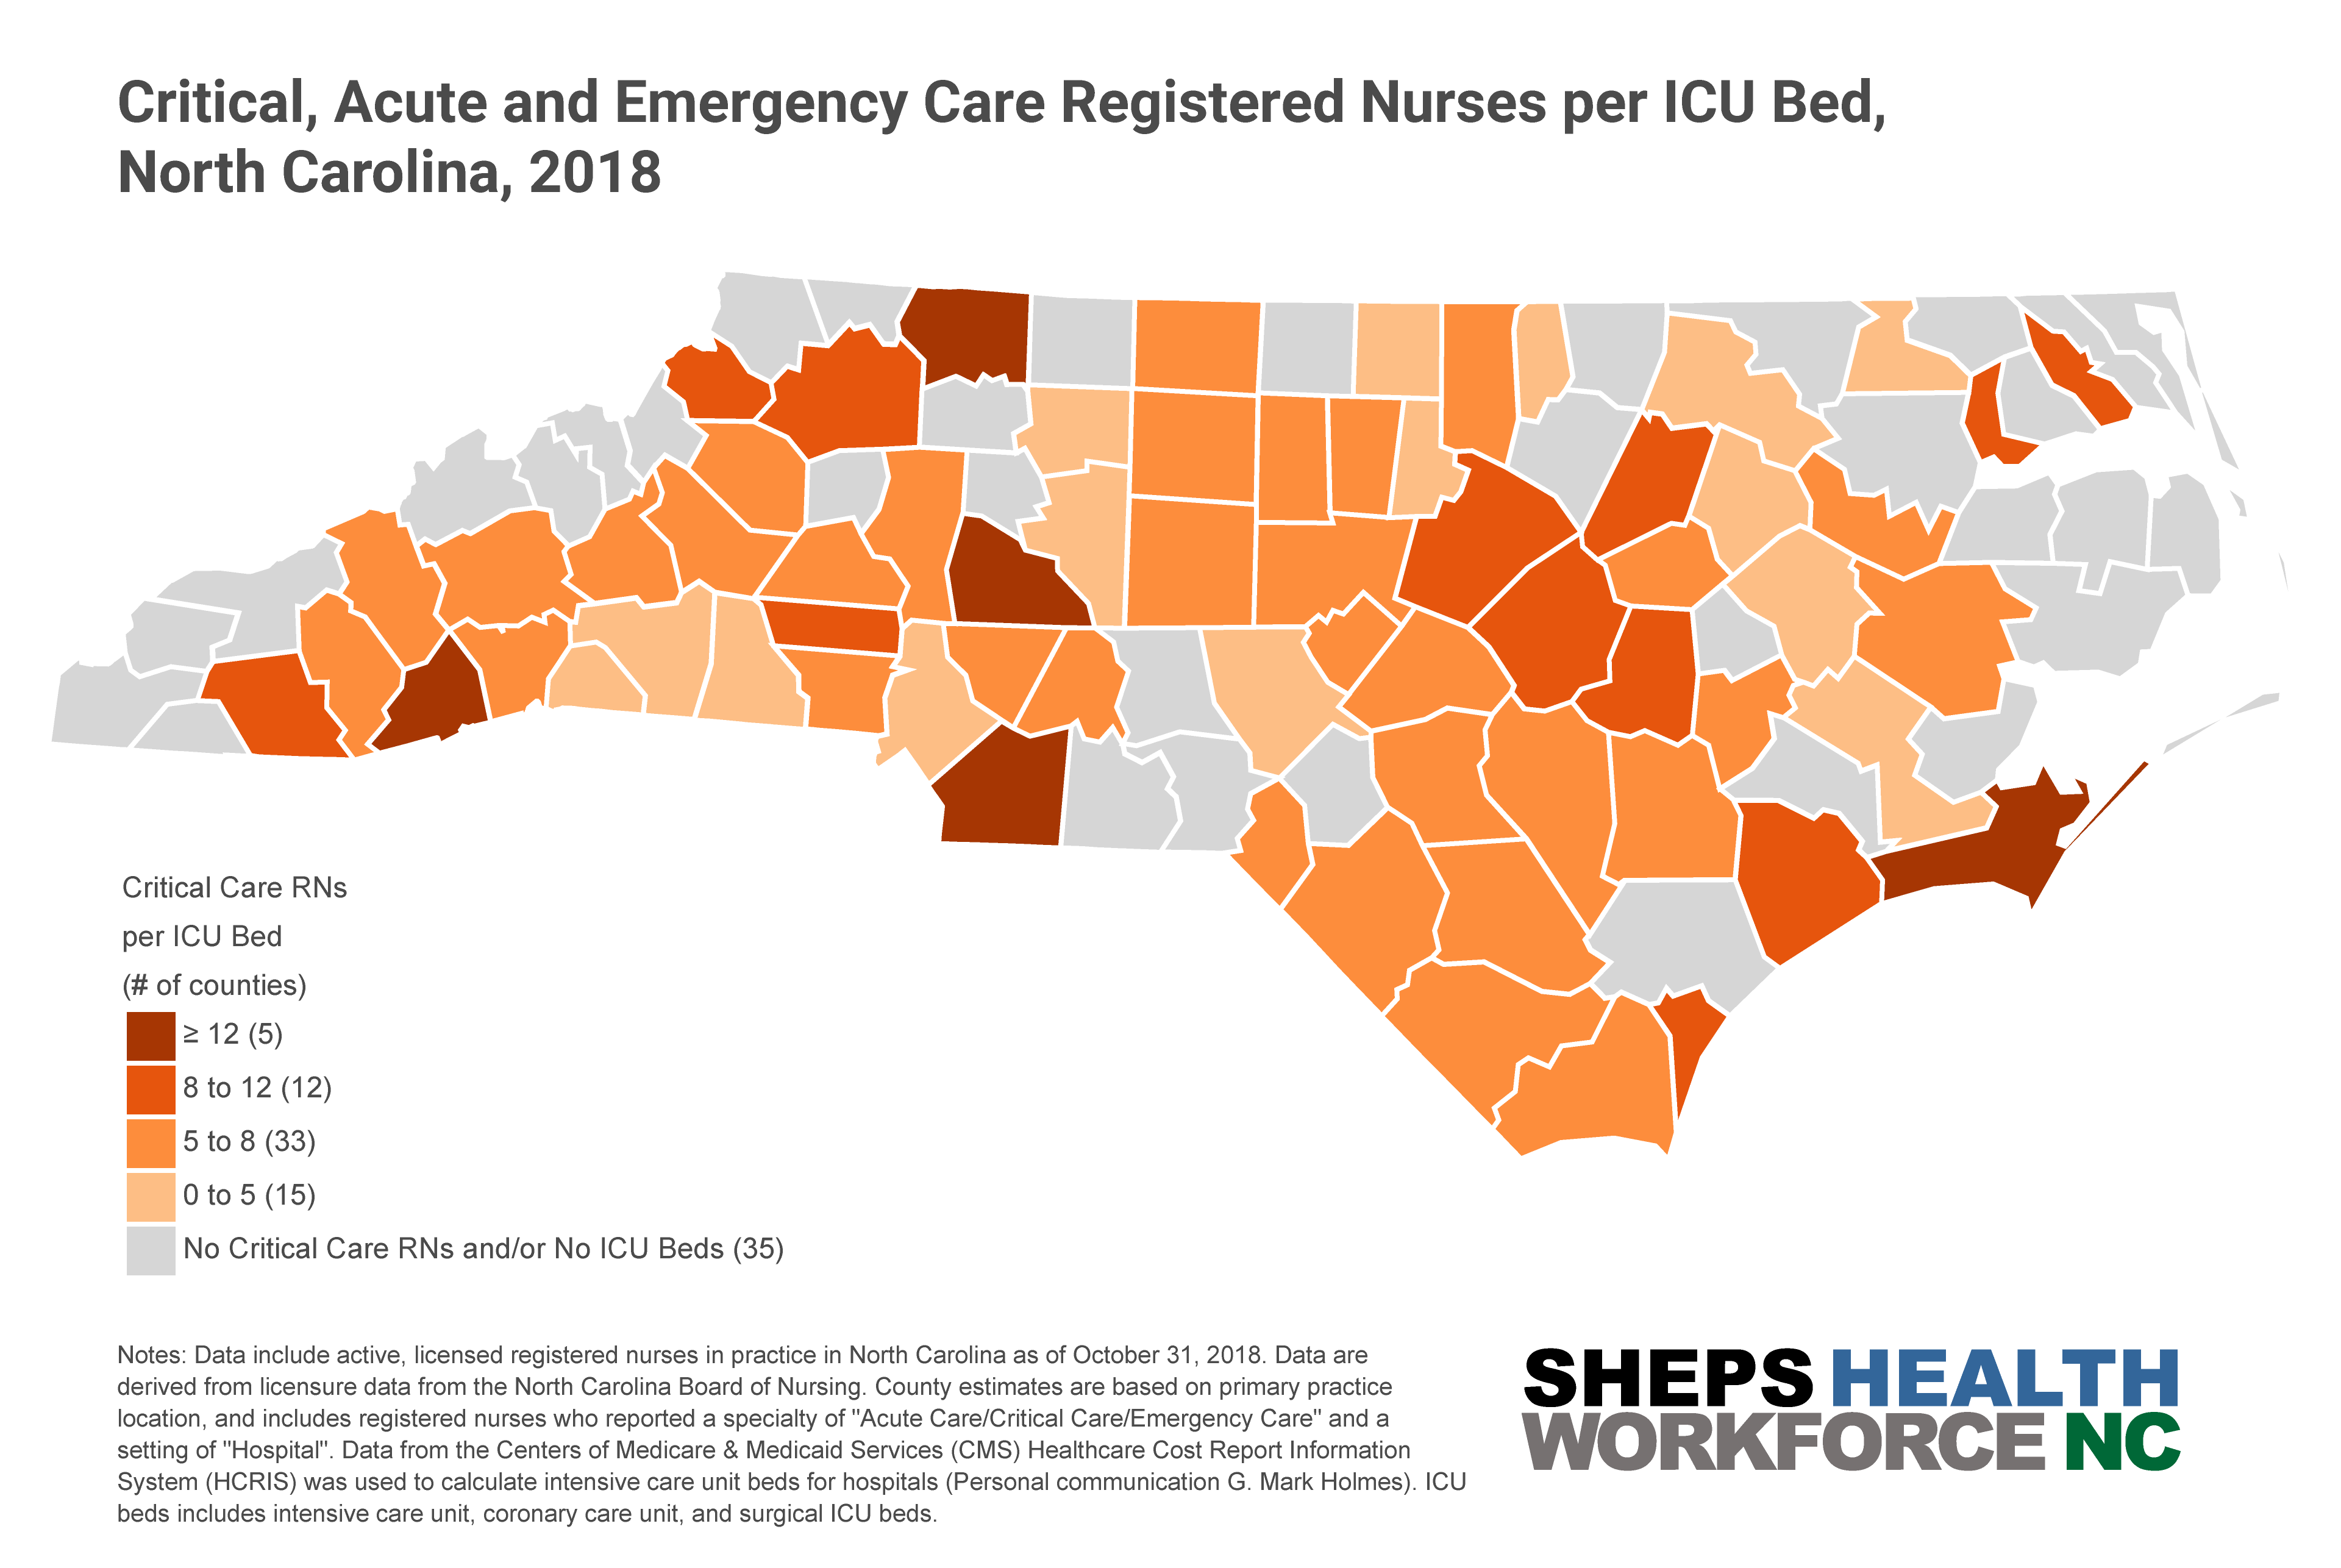 Map of Critical, Acute, and Emergency Care Registered Nurses per ICU Bed by County, North Carolina, 2018.